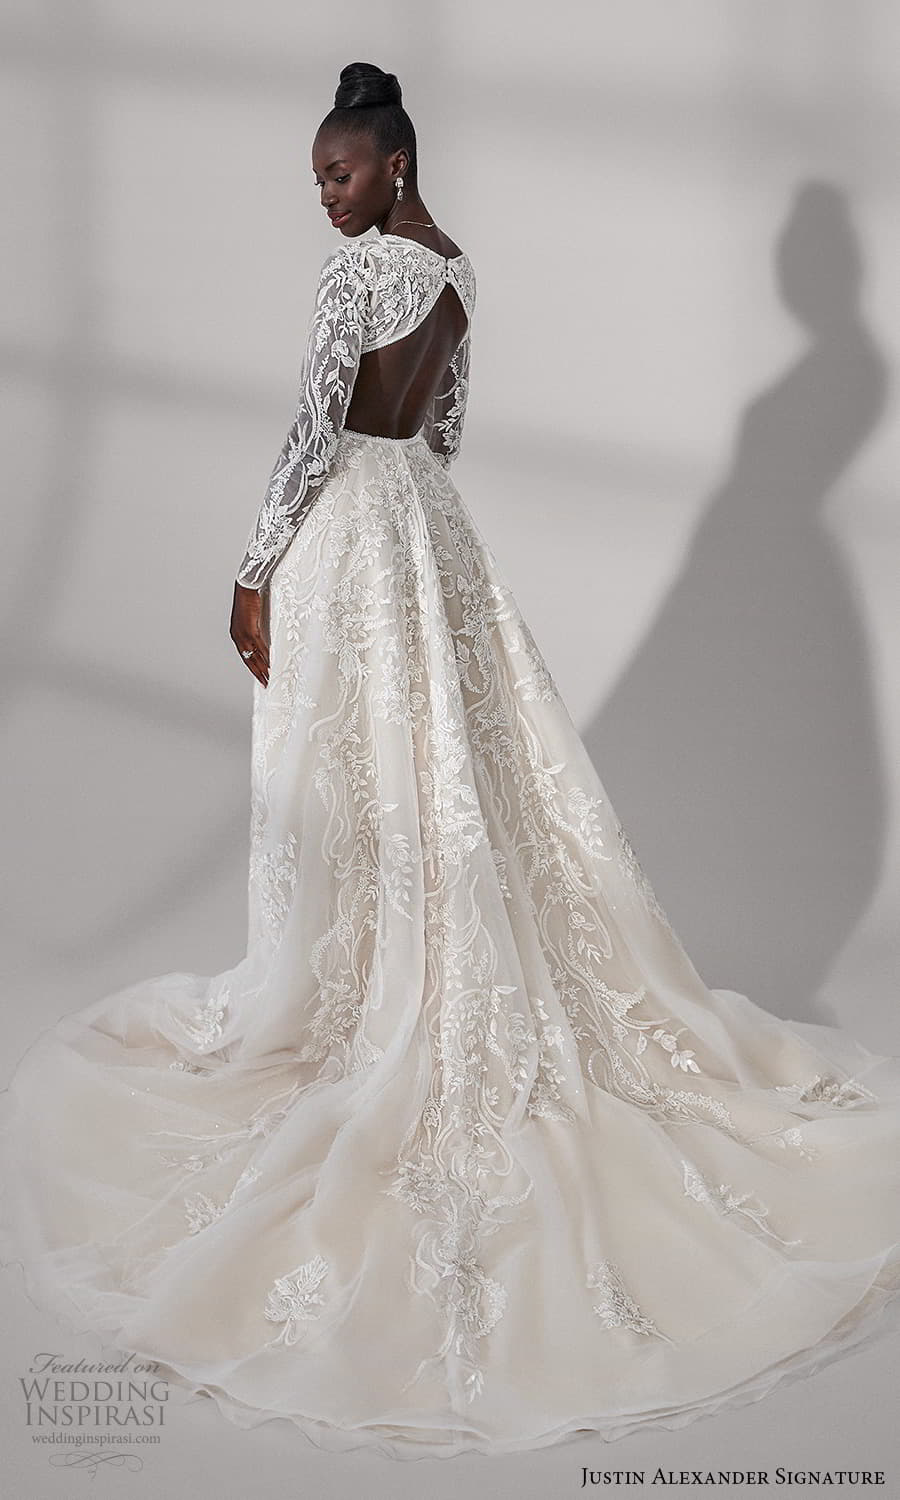 justin alexander signature fall 2021 bridal long sleeves v neckline fully embellished lace a line ball gown wedding dress cutout back chapel train (1) bv